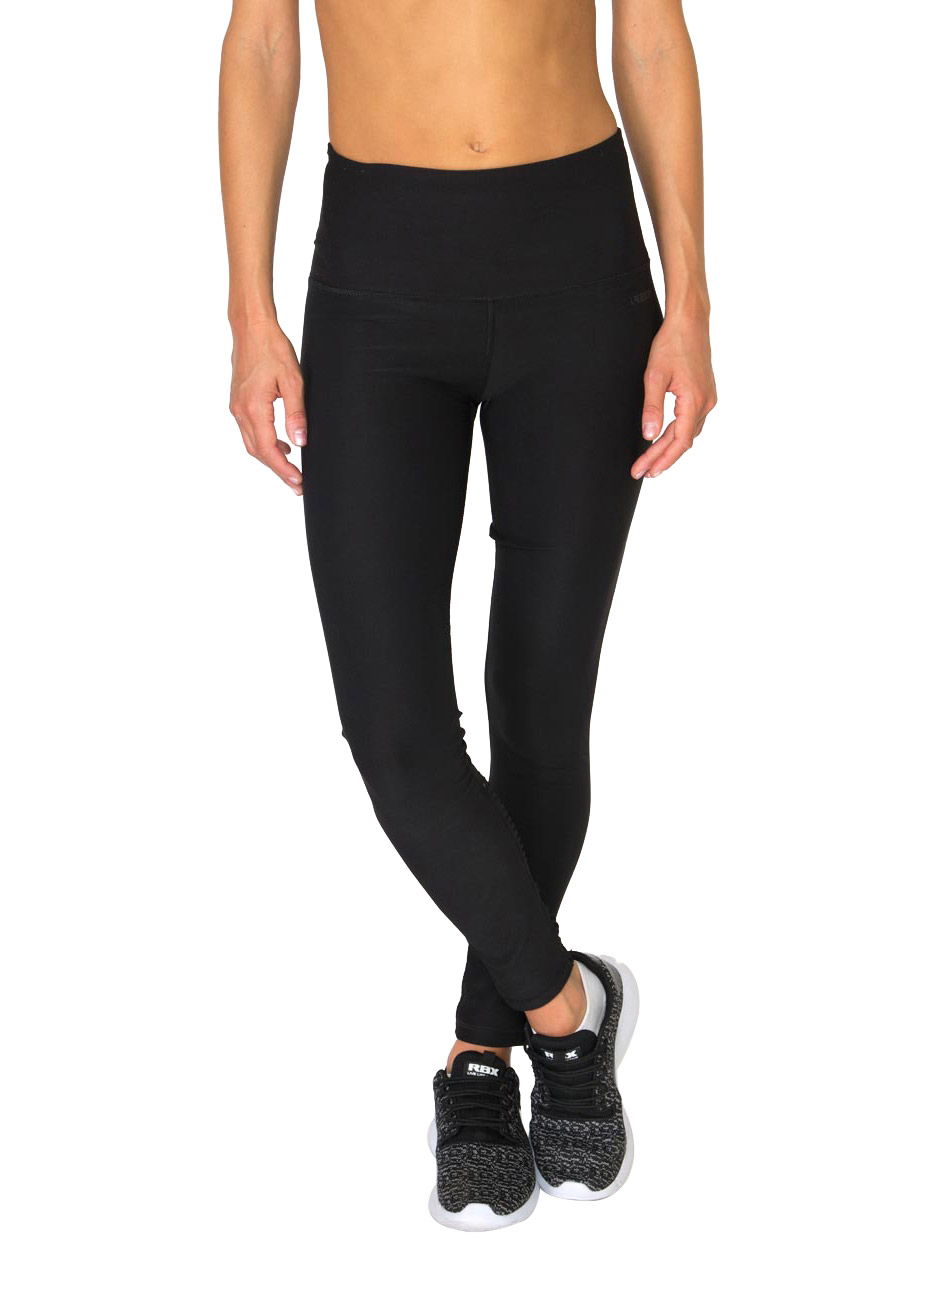 Women's Active Full Length Legging W/Tummy Control